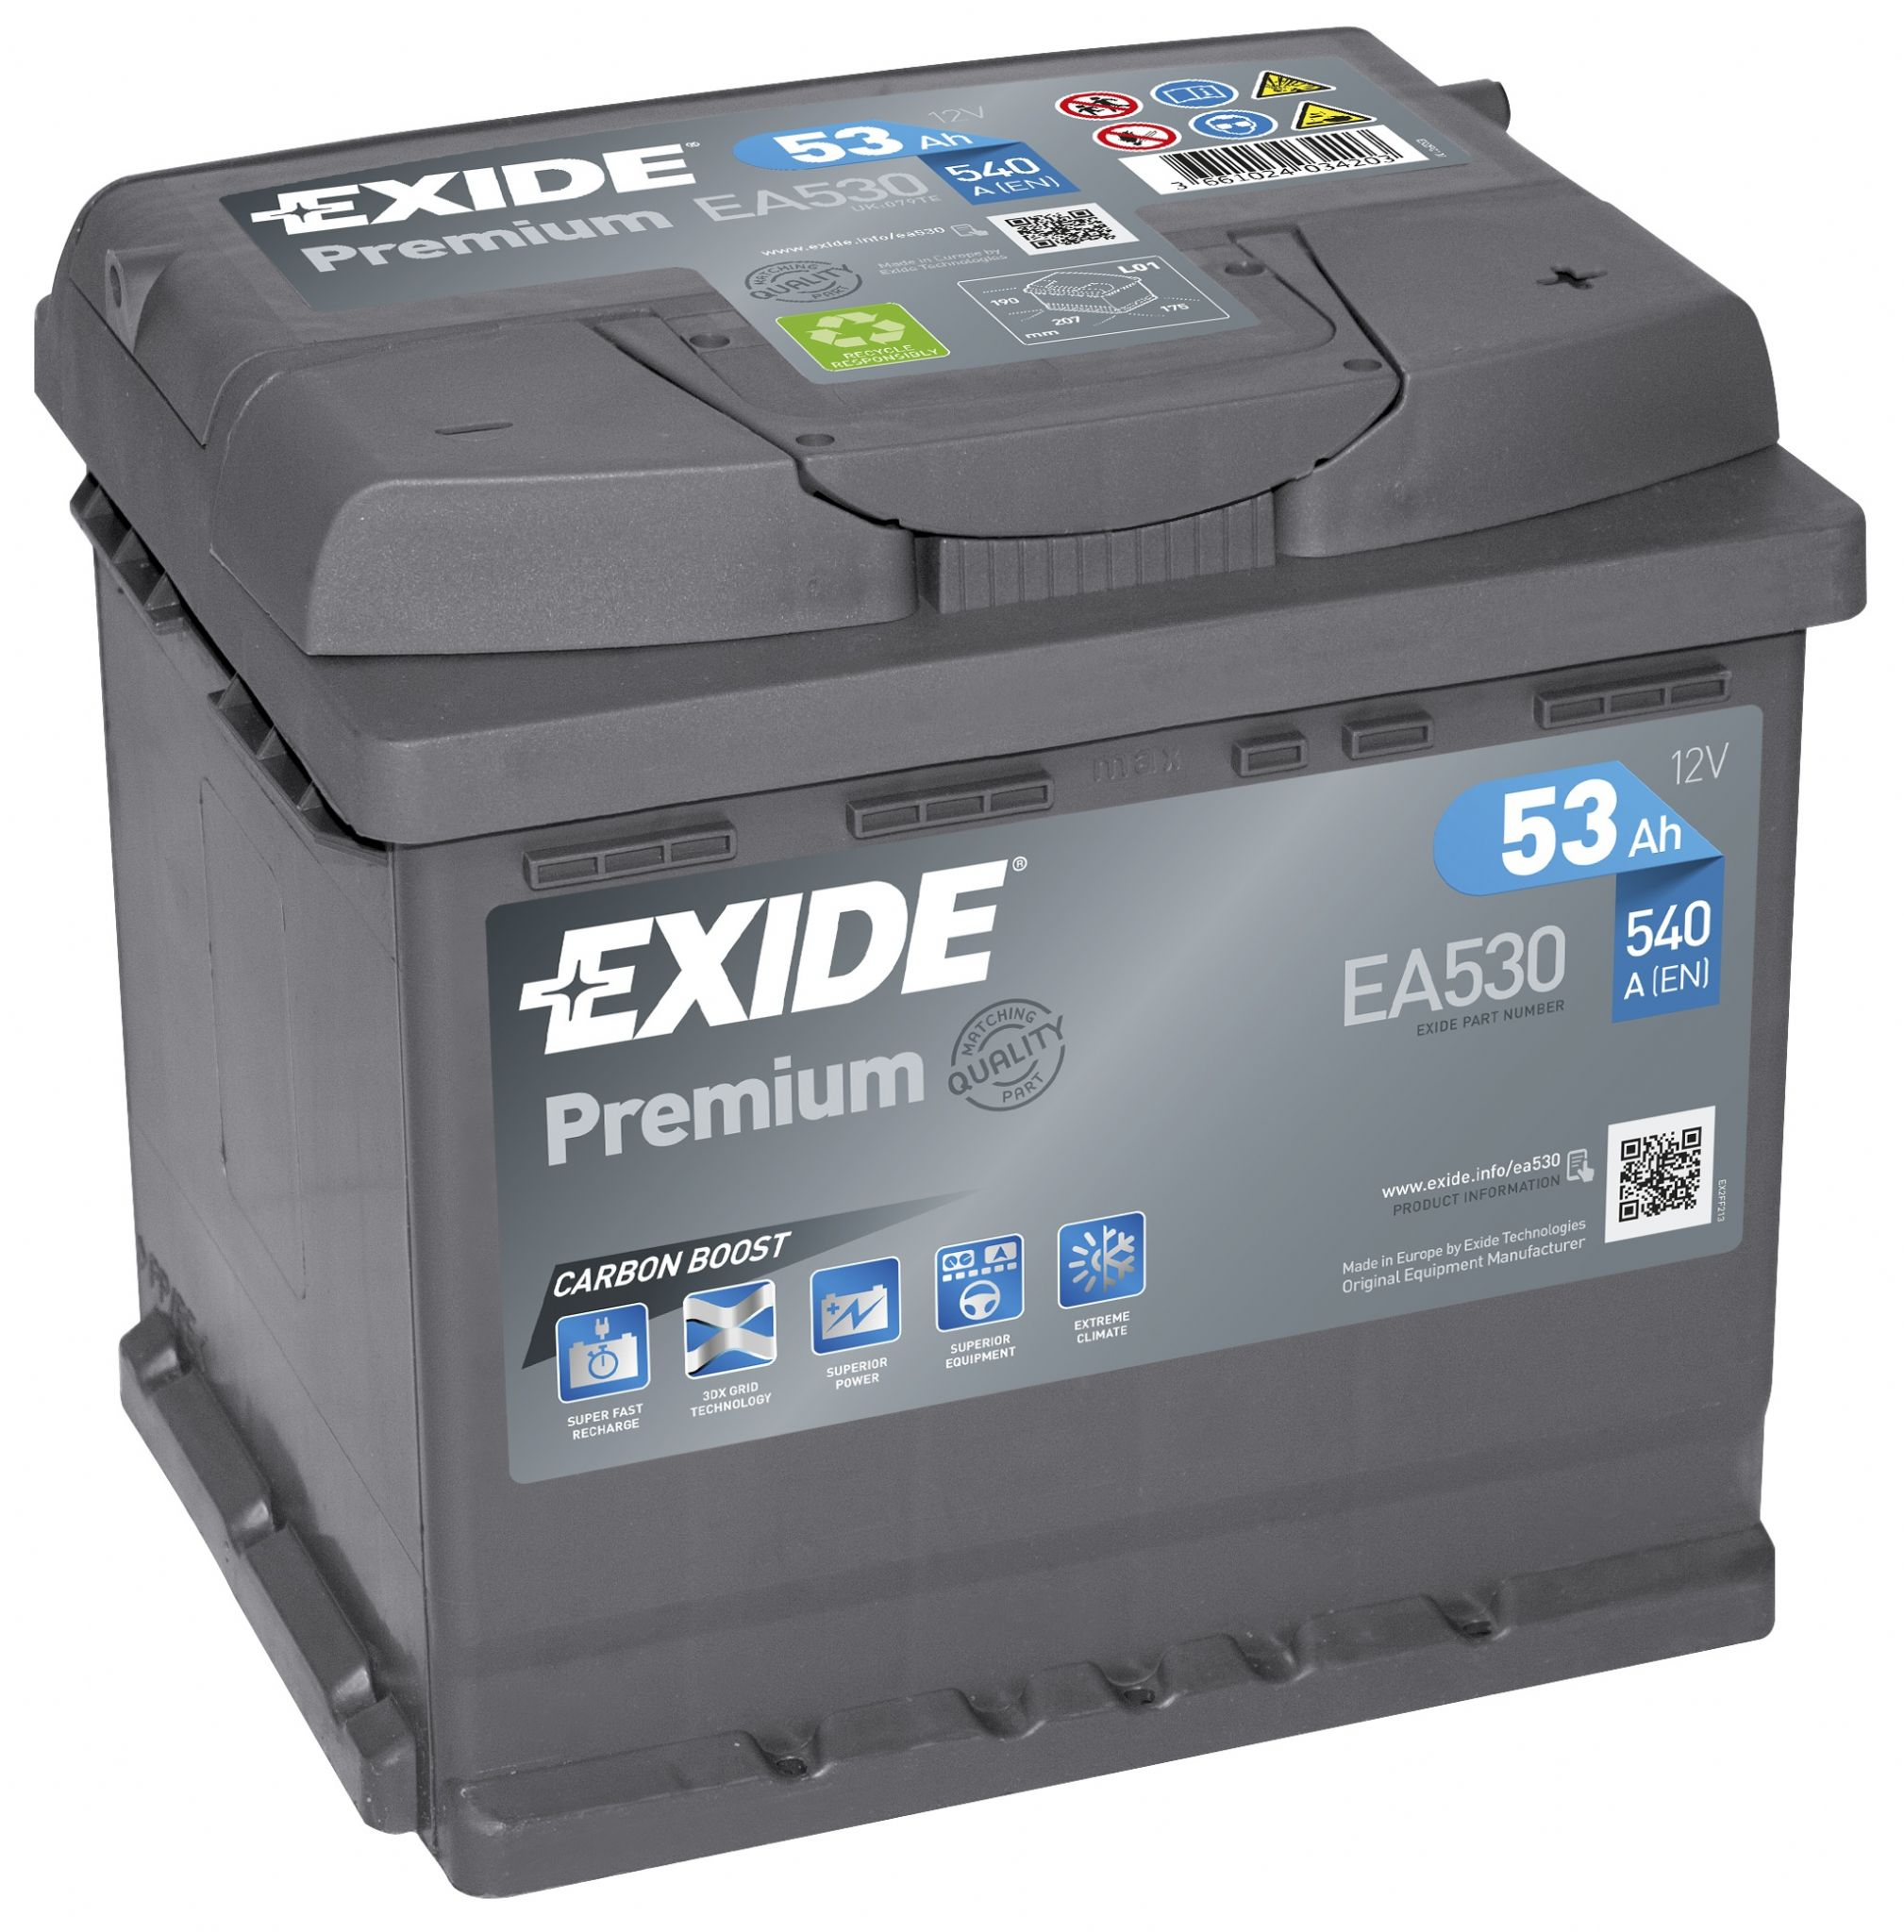 Exide car battery price list 2016